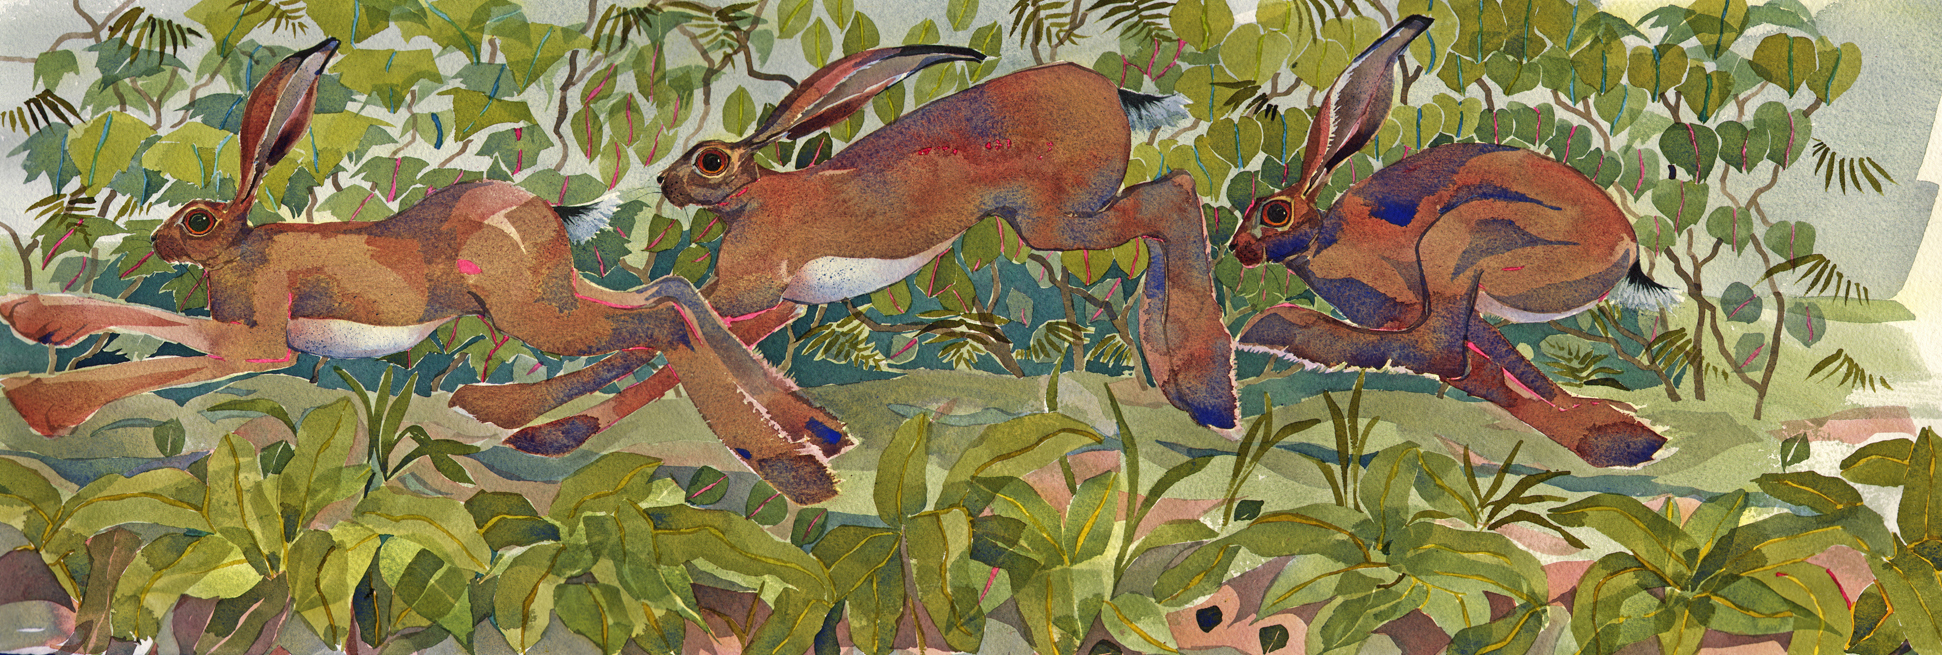 Hare Play   SOLD image